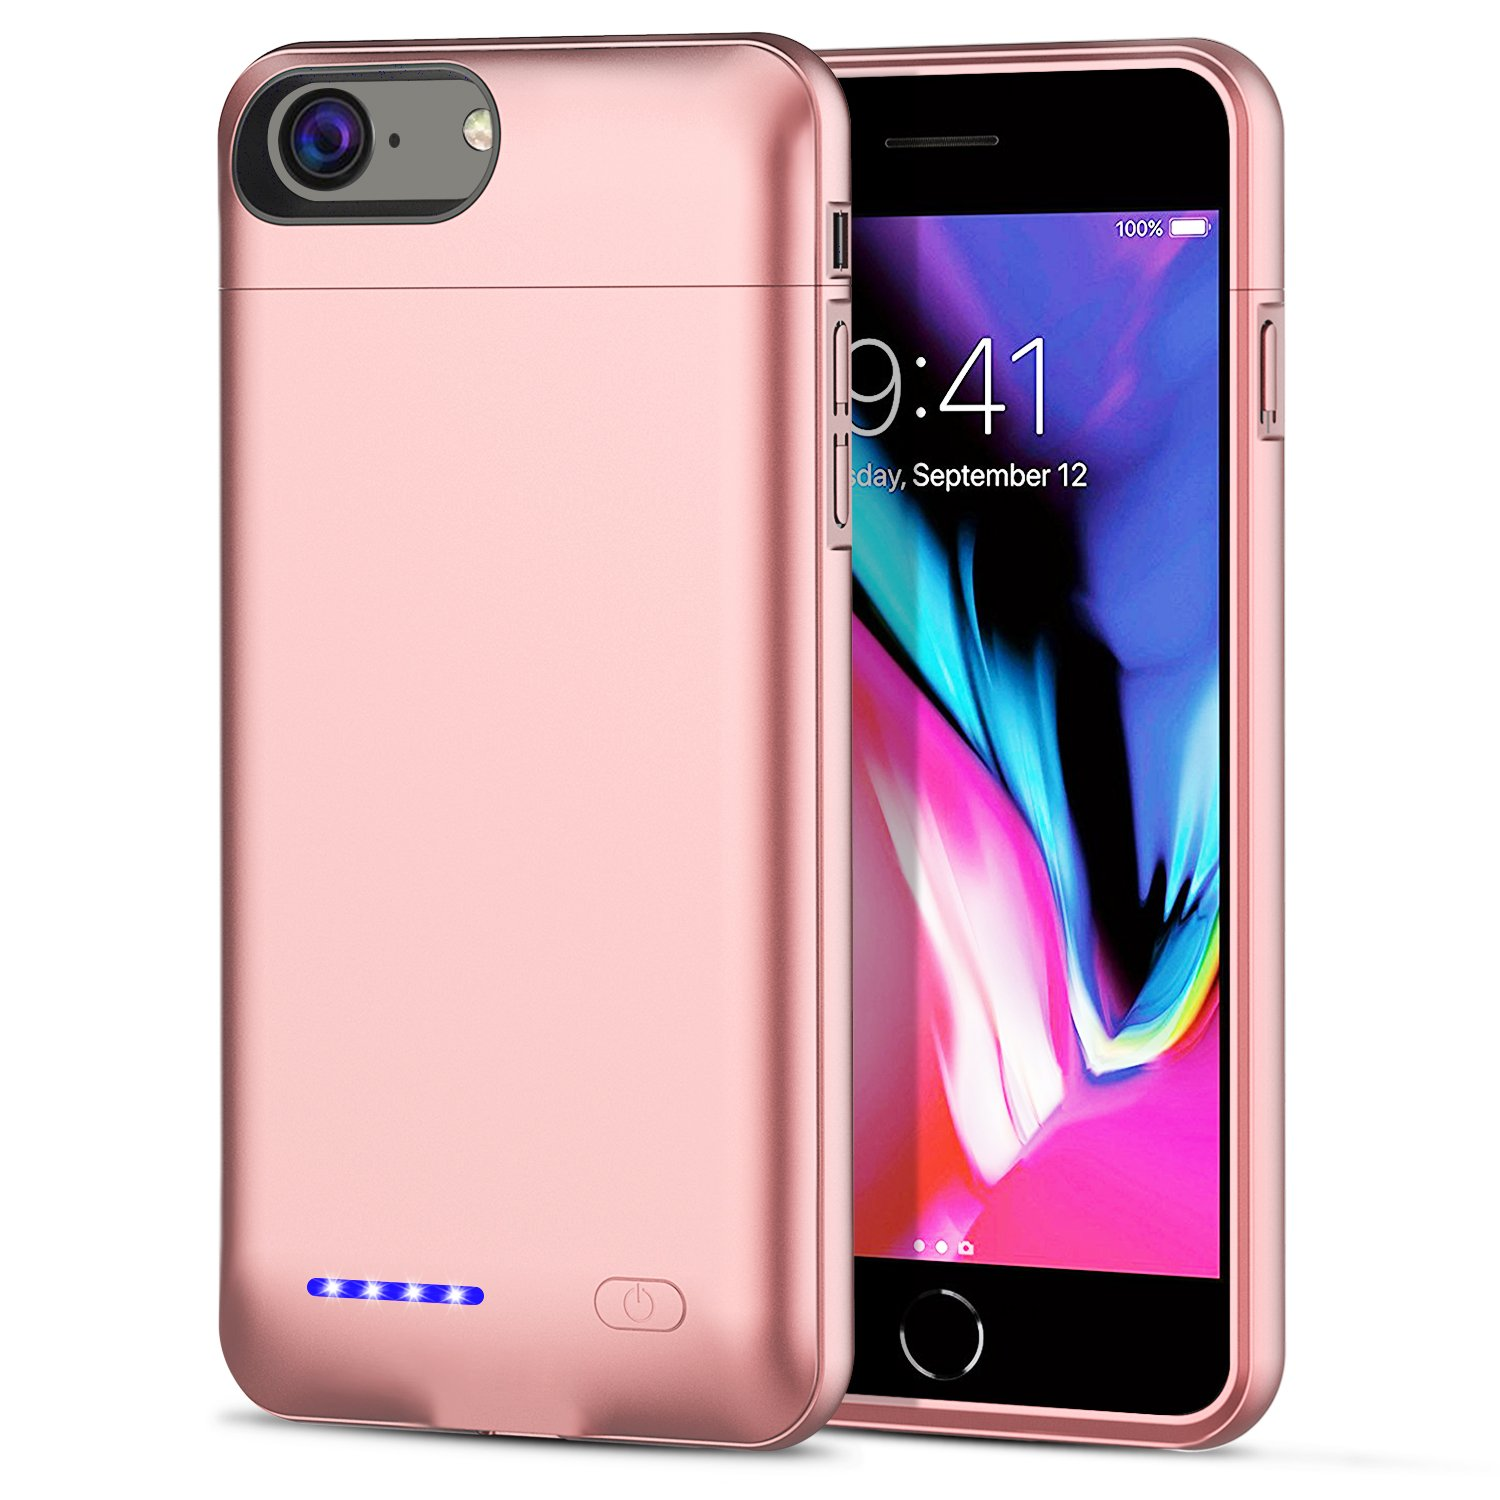 [Upgrade] iPhone 8/7/6S/6 Battery Case, SUNWELL 3000mAh High Capacity Ultra Slim External Charger Case for iPhone 8/7/6/6S with Extra 110% Battery Life (4.7'' Rose Gold)